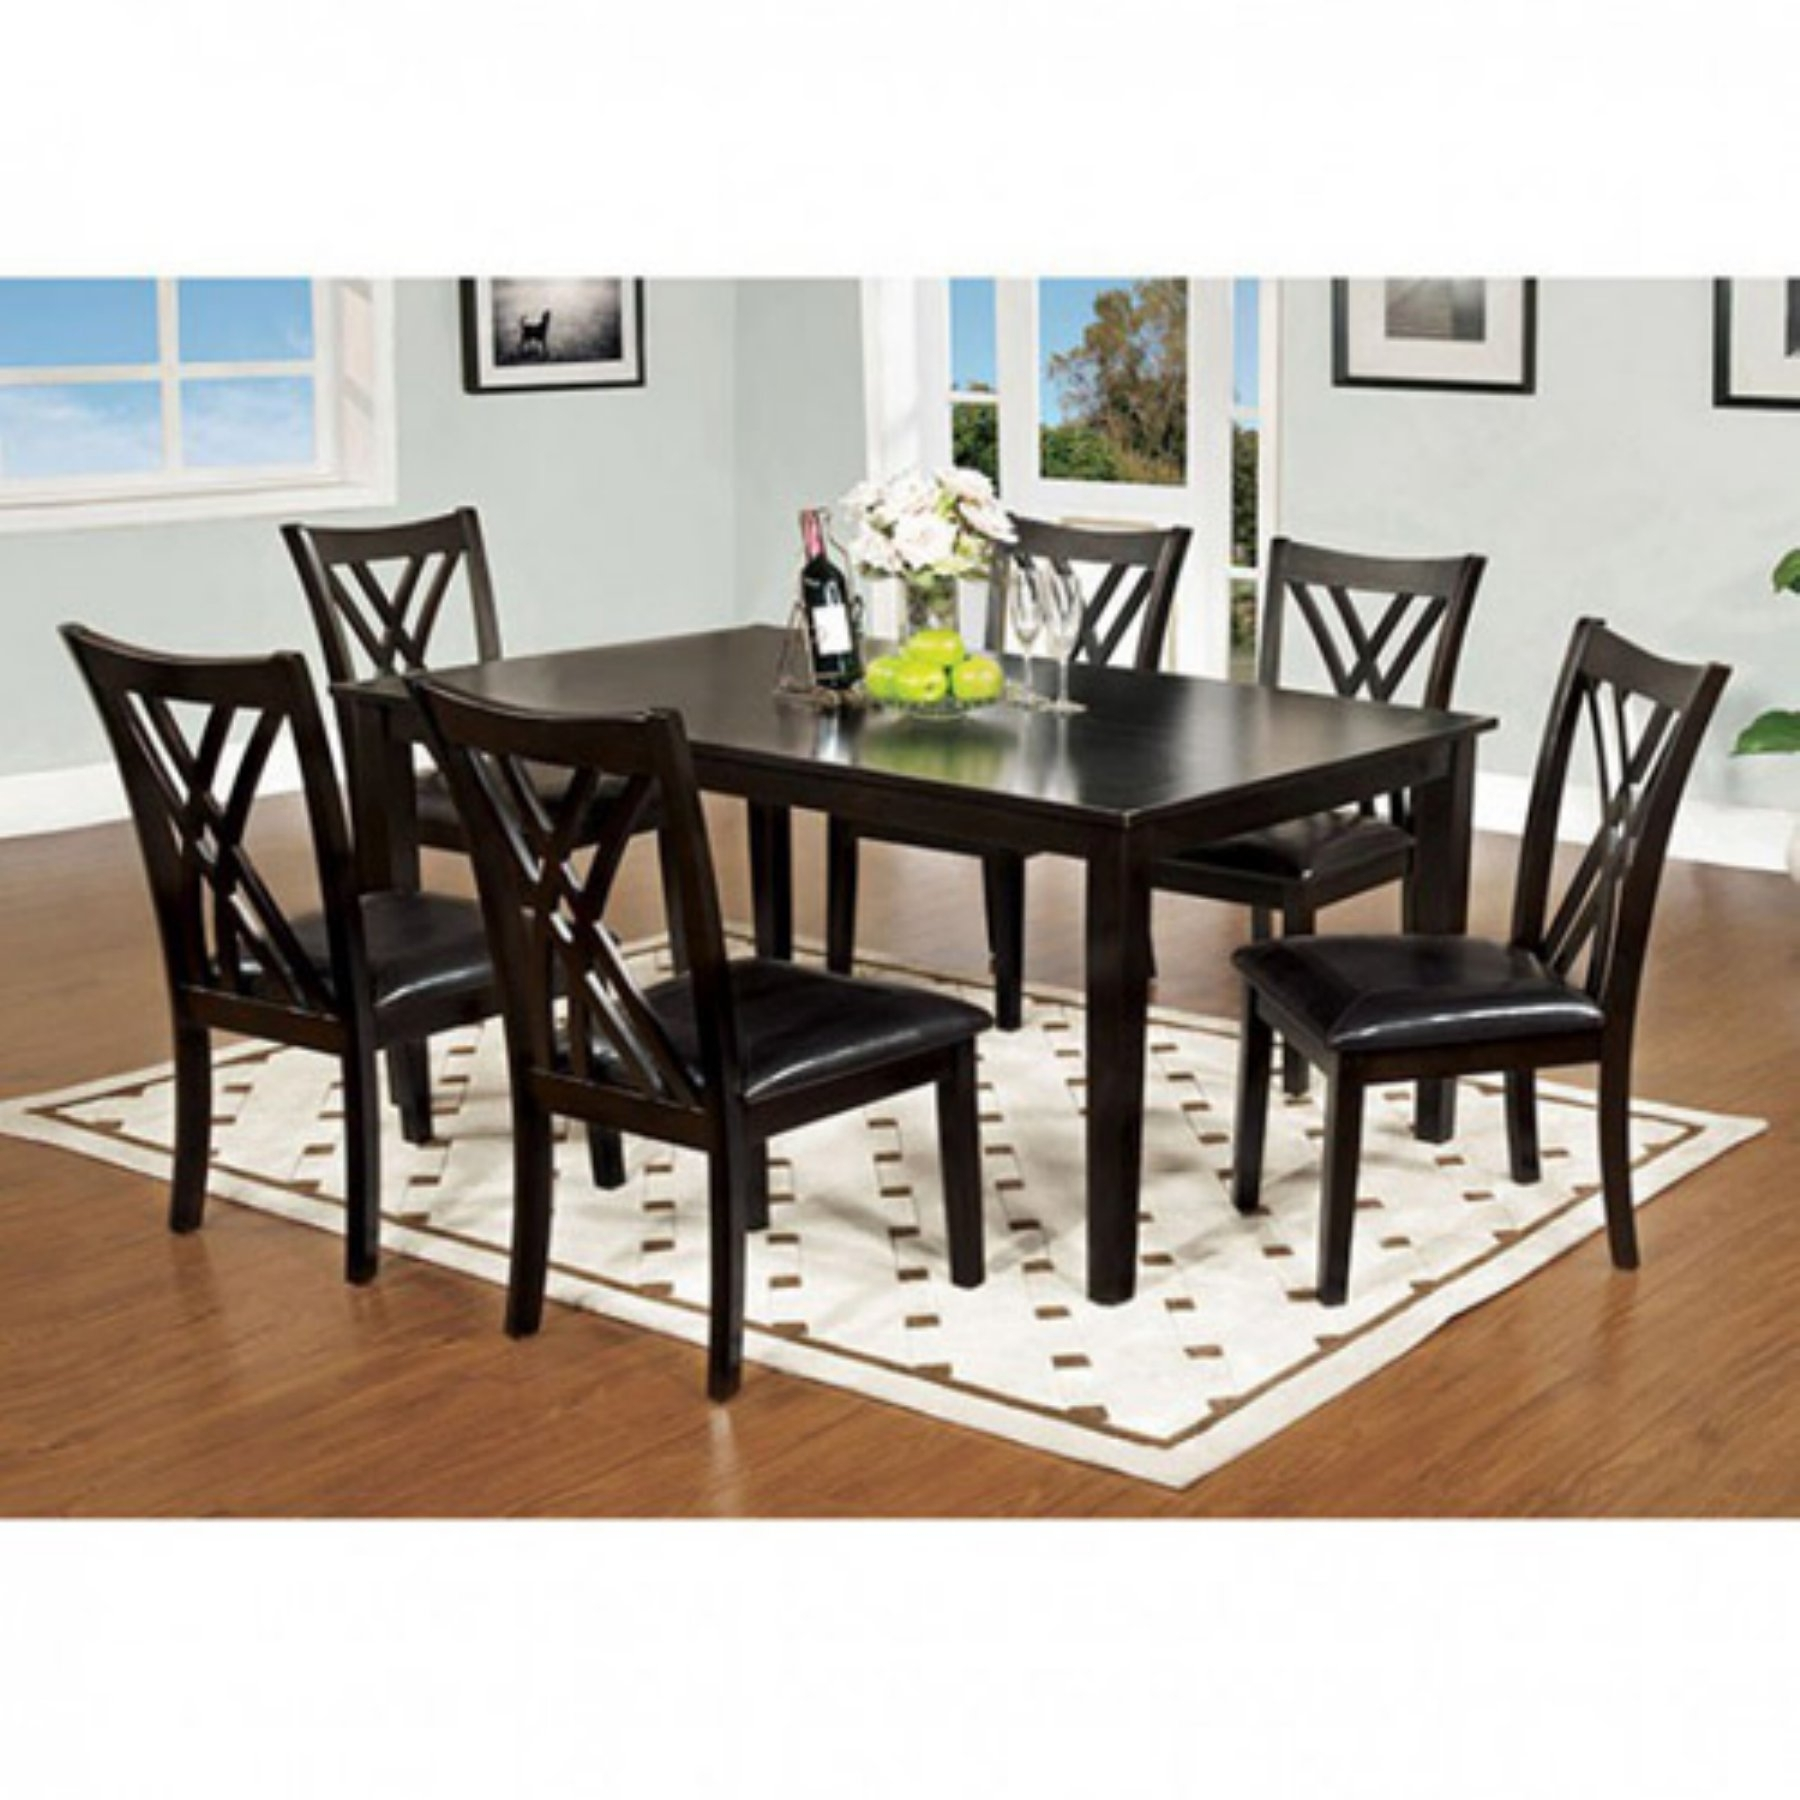 Benzara Springhill Enticing 7 Piece Rectangular Dining Table Set In Inside Best And Newest Laurent 7 Piece Rectangle Dining Sets With Wood And Host Chairs (Image 3 of 20)